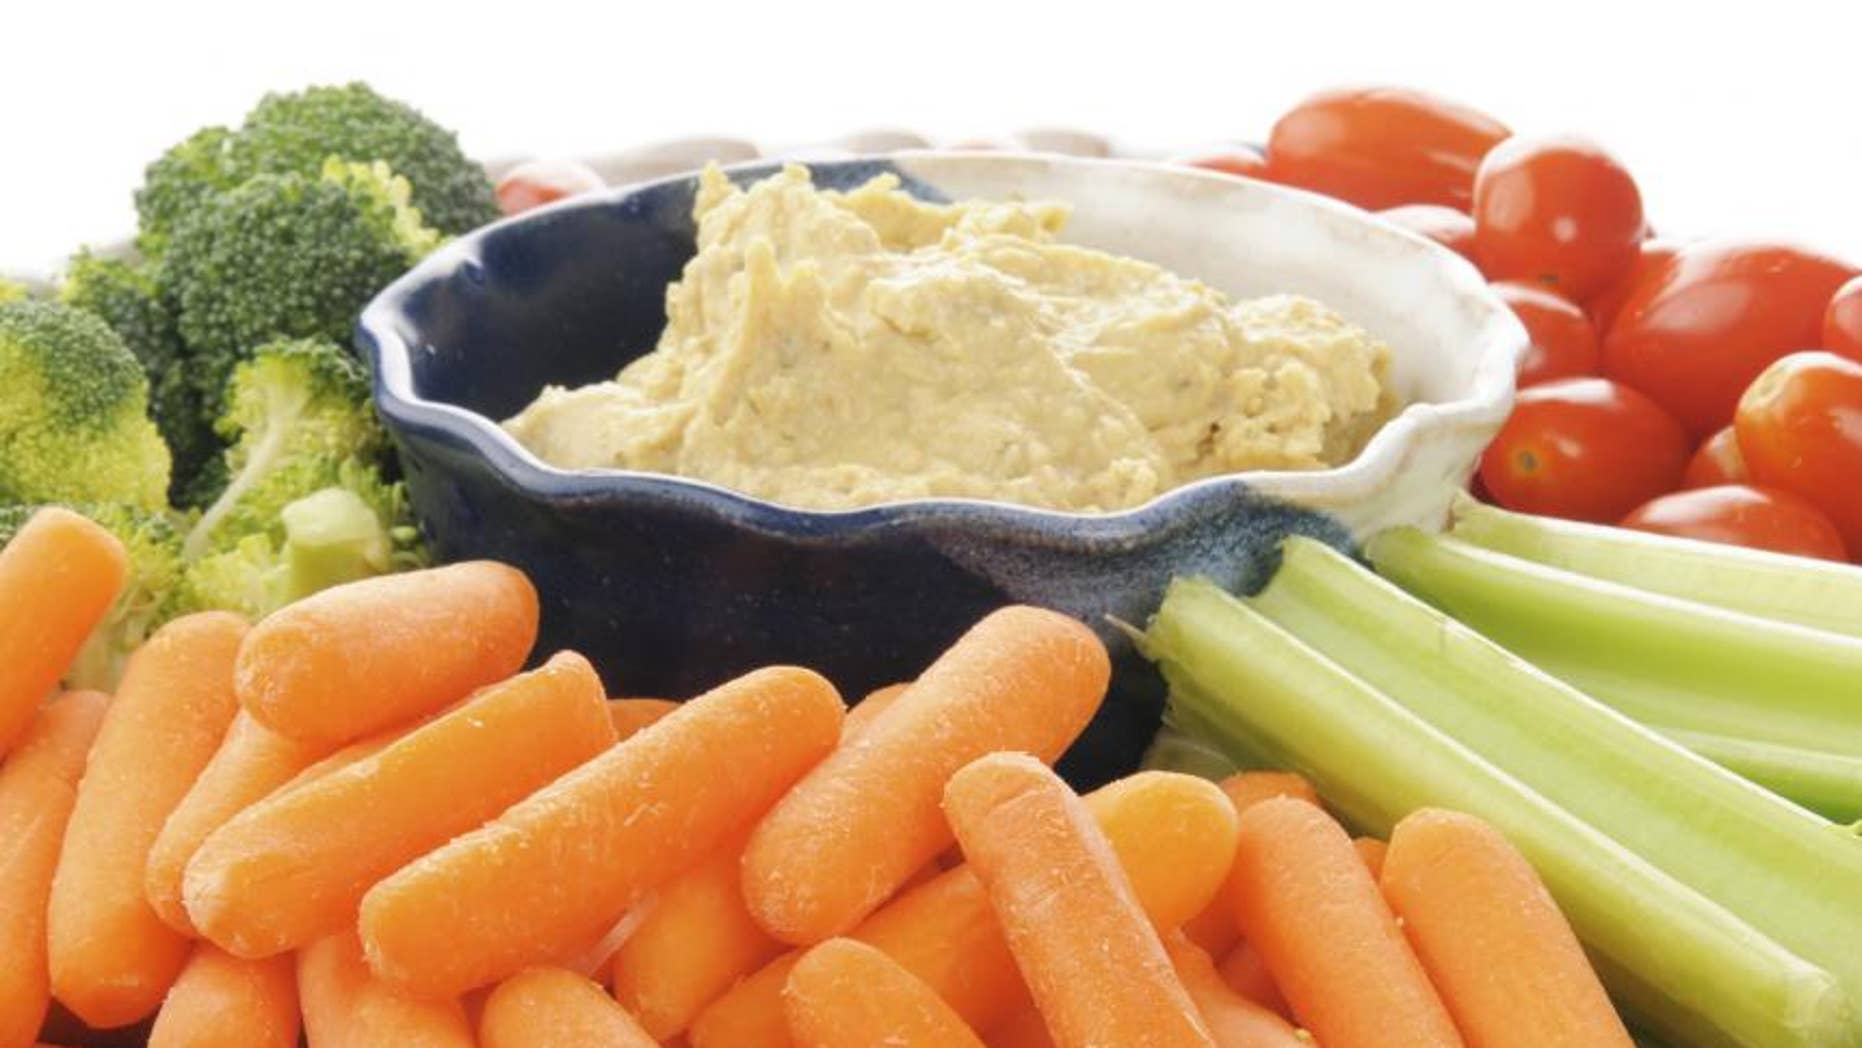 Hummus and veggies are a great combination.  Like nuts, hummus offers protein, fiber and fat all in one. Combine it with the veggies, which are of course loaded with nutrients, and this one is a no brainer.